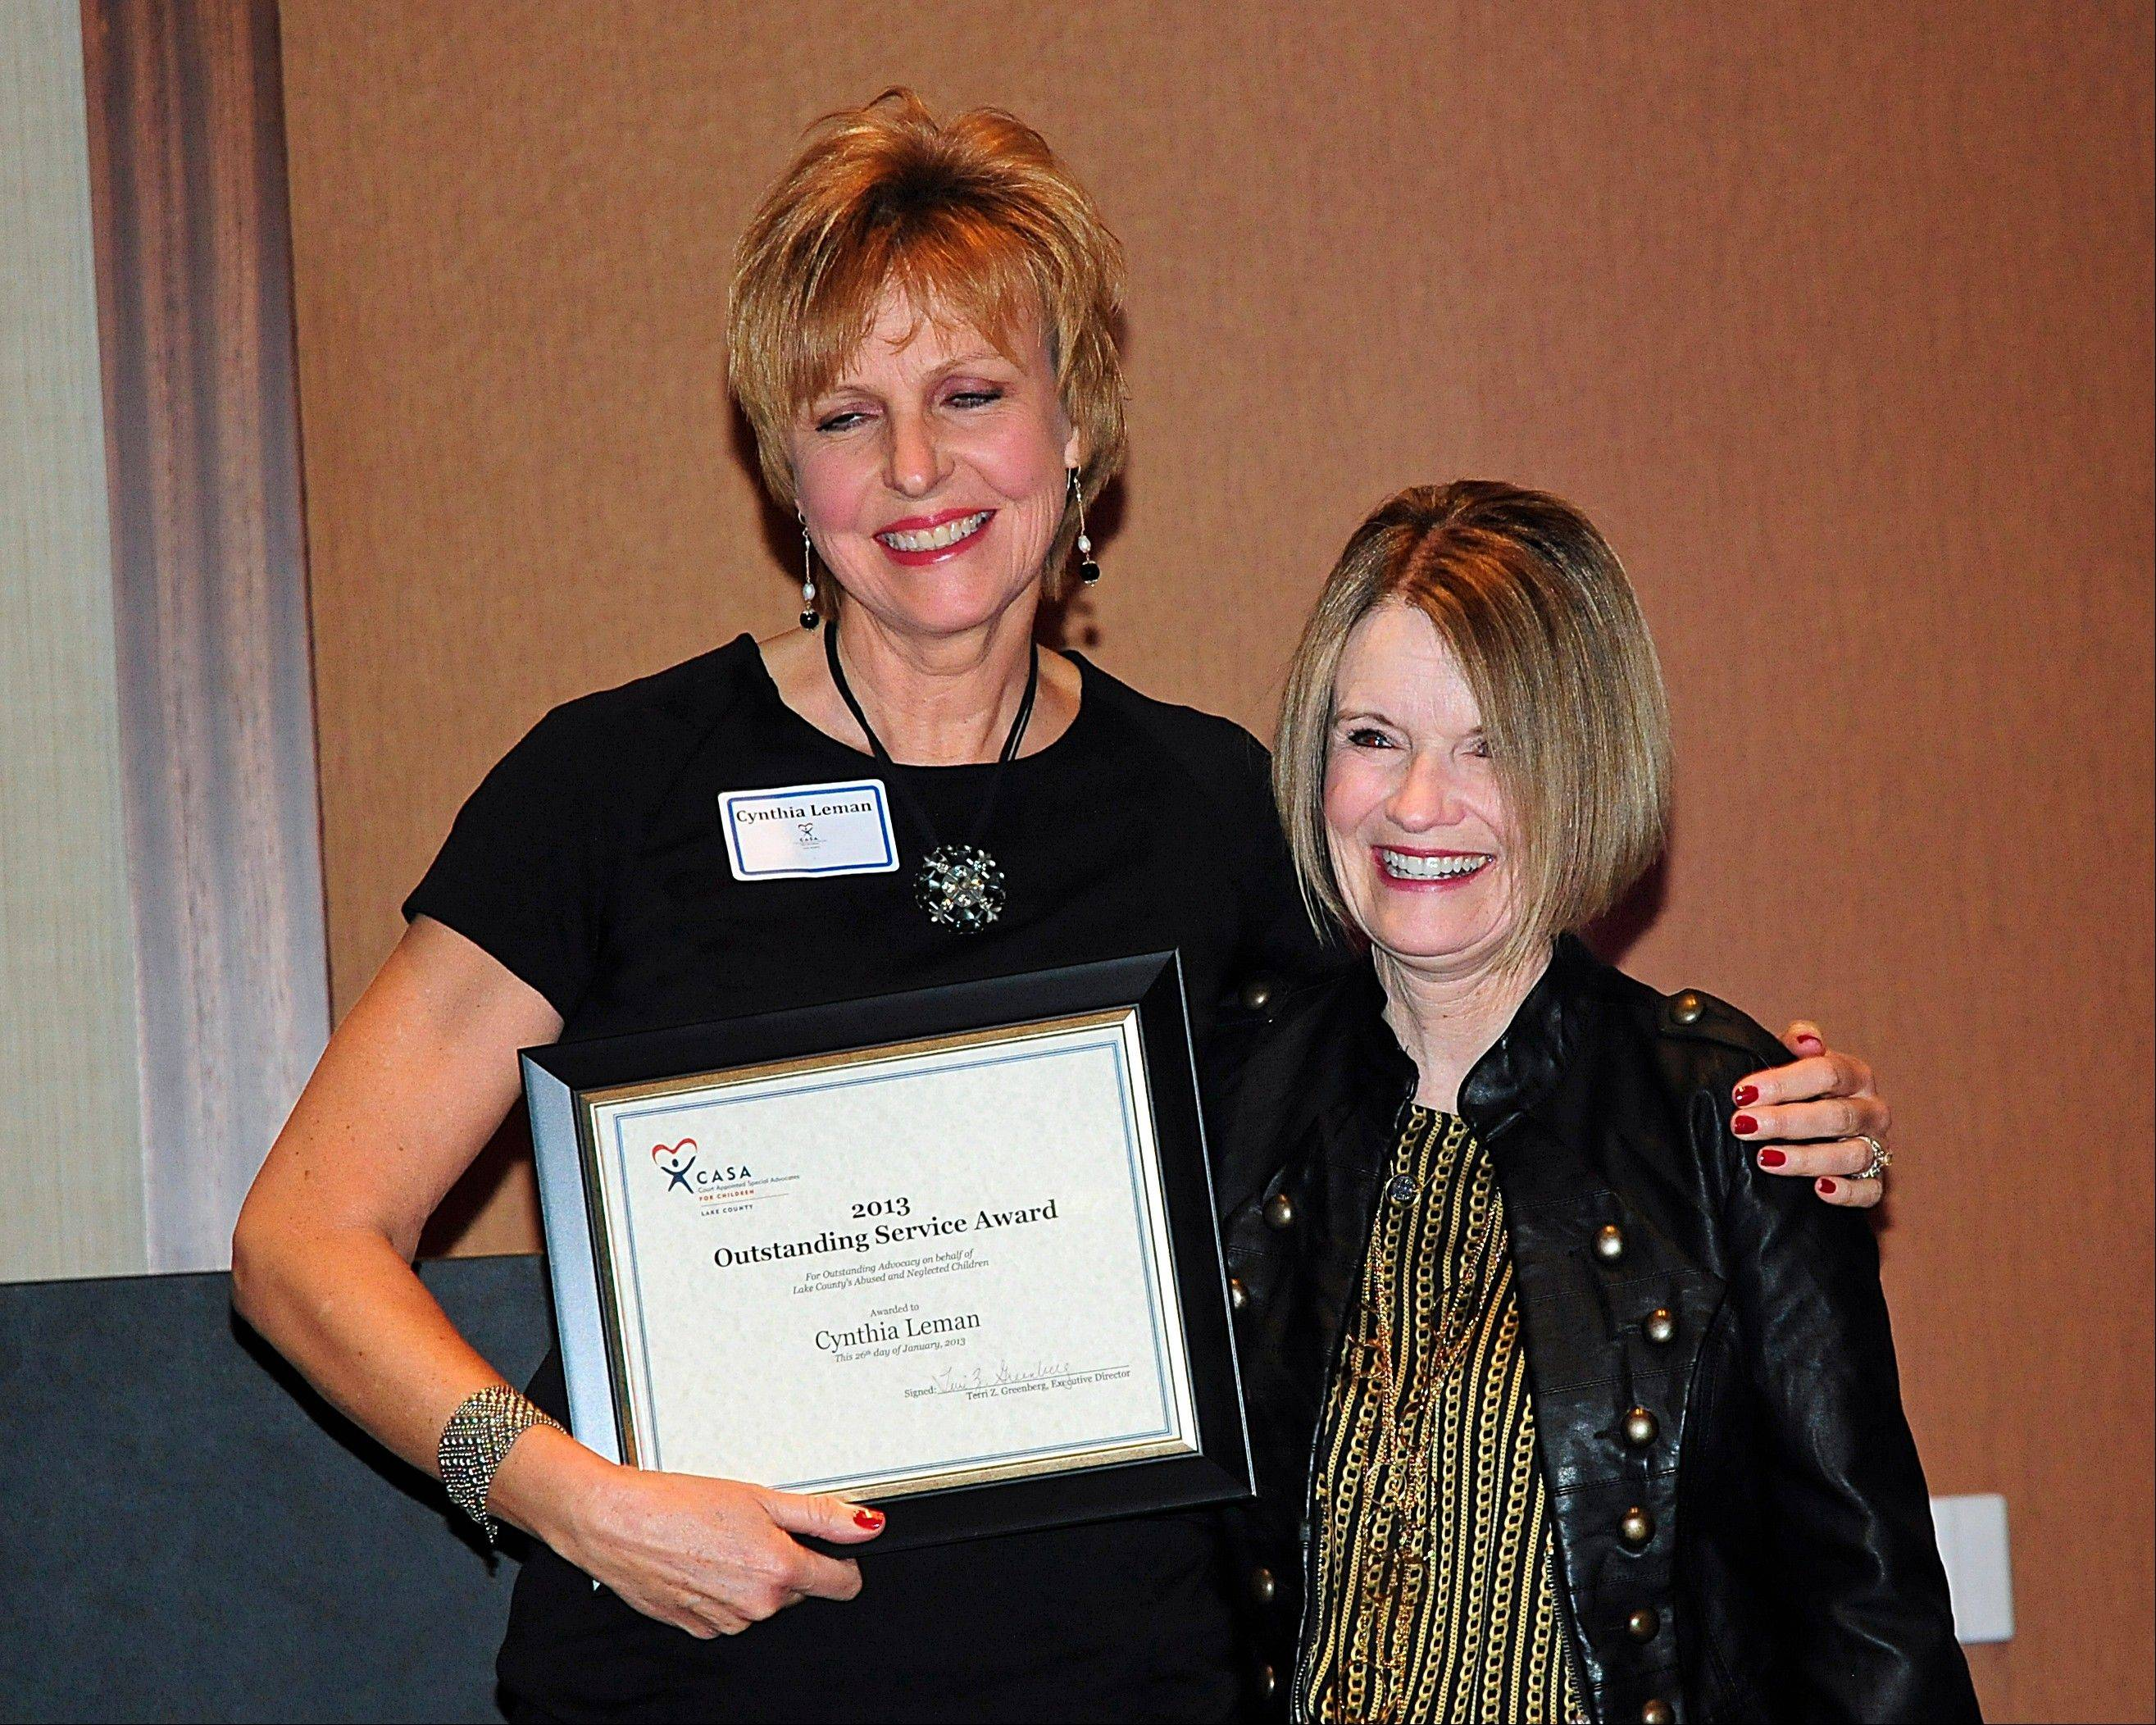 Juvenile Court Judge Sarah Lessman, right, presents CASA Volunteer Advocate Cynthia Leman of Grayslake a 2013 Outstanding Service Award at a recent Volunteer Appreciation Awards dinner at The Westin Chicago North Shore. The nonprofit's volunteers advocated for a record number of 577 abused children in 2012. CASA Lake County is celebrating its 20th year of advocacy for abused and neglected children.